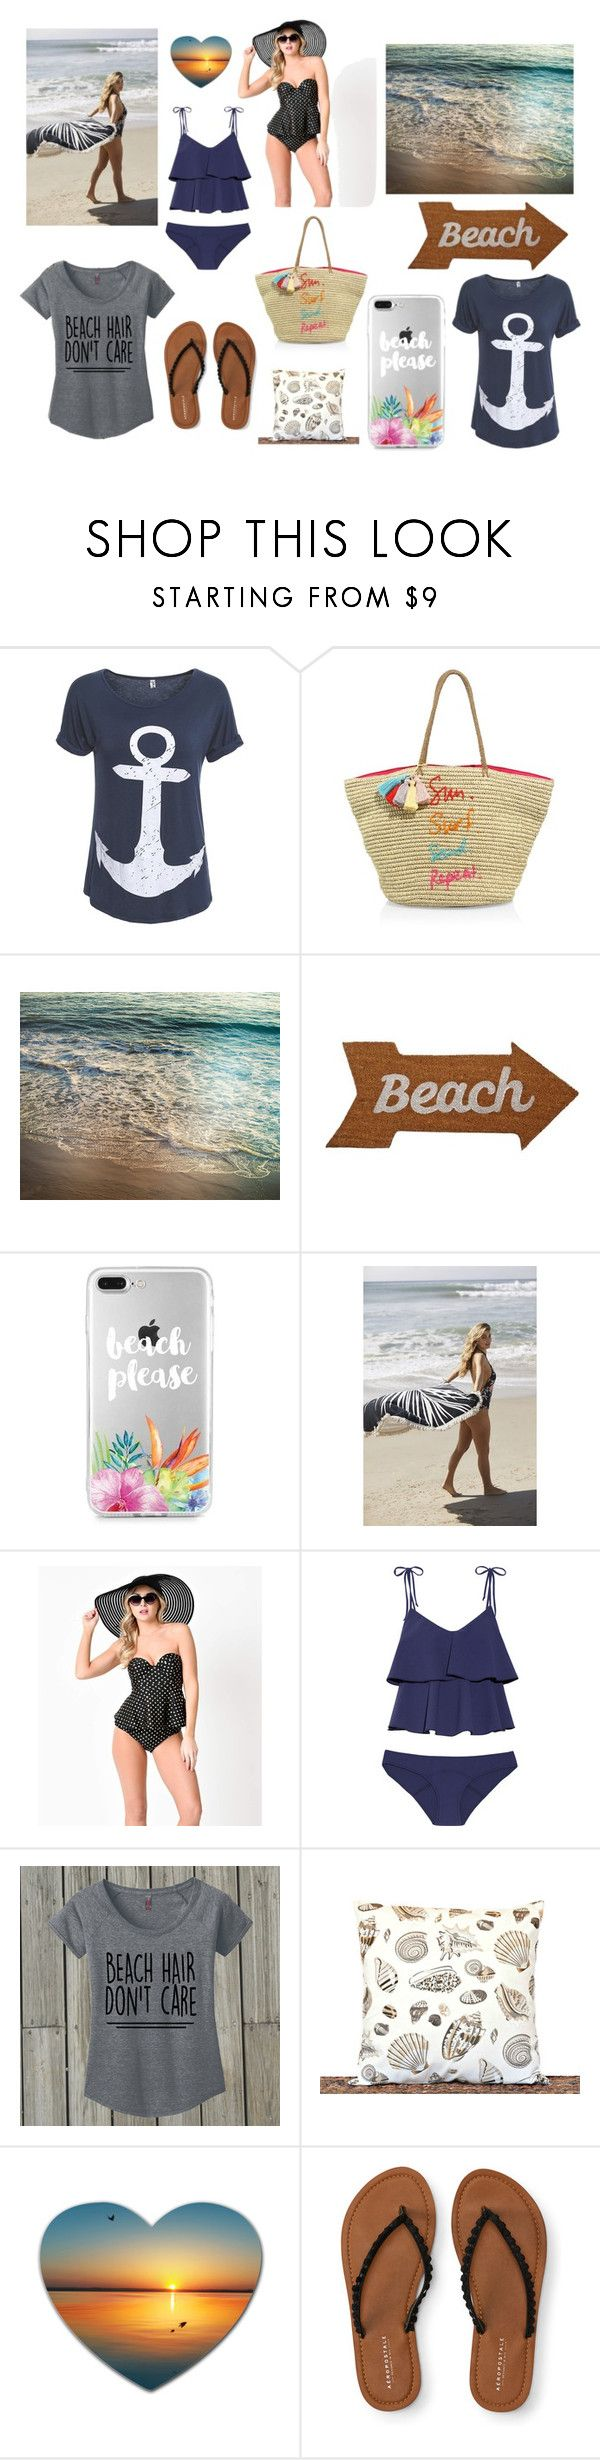 """BEACH!!"" by mad-fred ❤ liked on Polyvore featuring Rebecca Minkoff, Mud Pie, Urban Outfitters, Betsey Johnson, Lisa Marie Fernandez and Aéropostale"